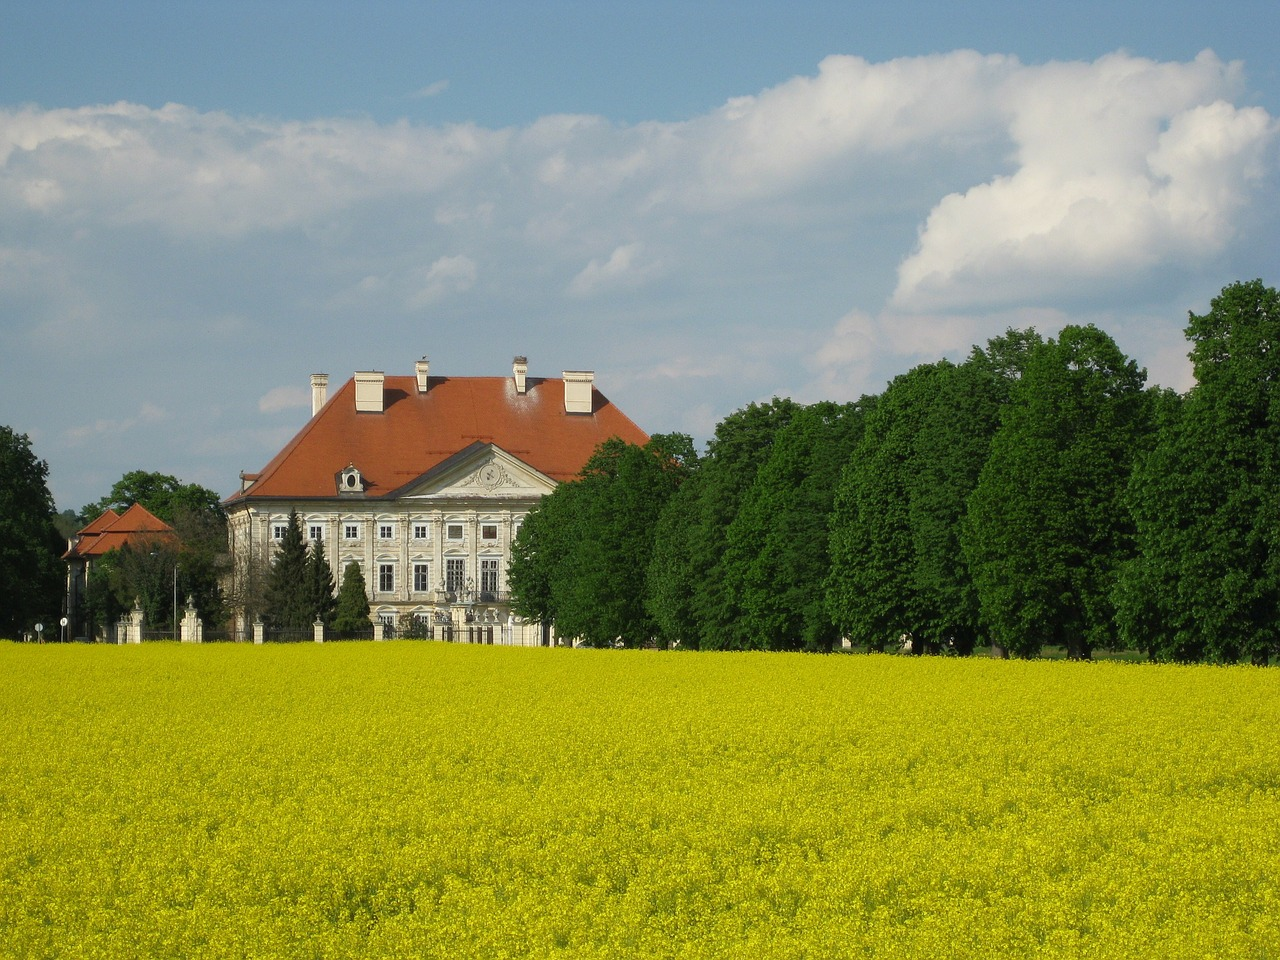 castle,slovenia,field of rapeseeds,home,property,villa,free pictures, free photos, free images, royalty free, free illustrations, public domain